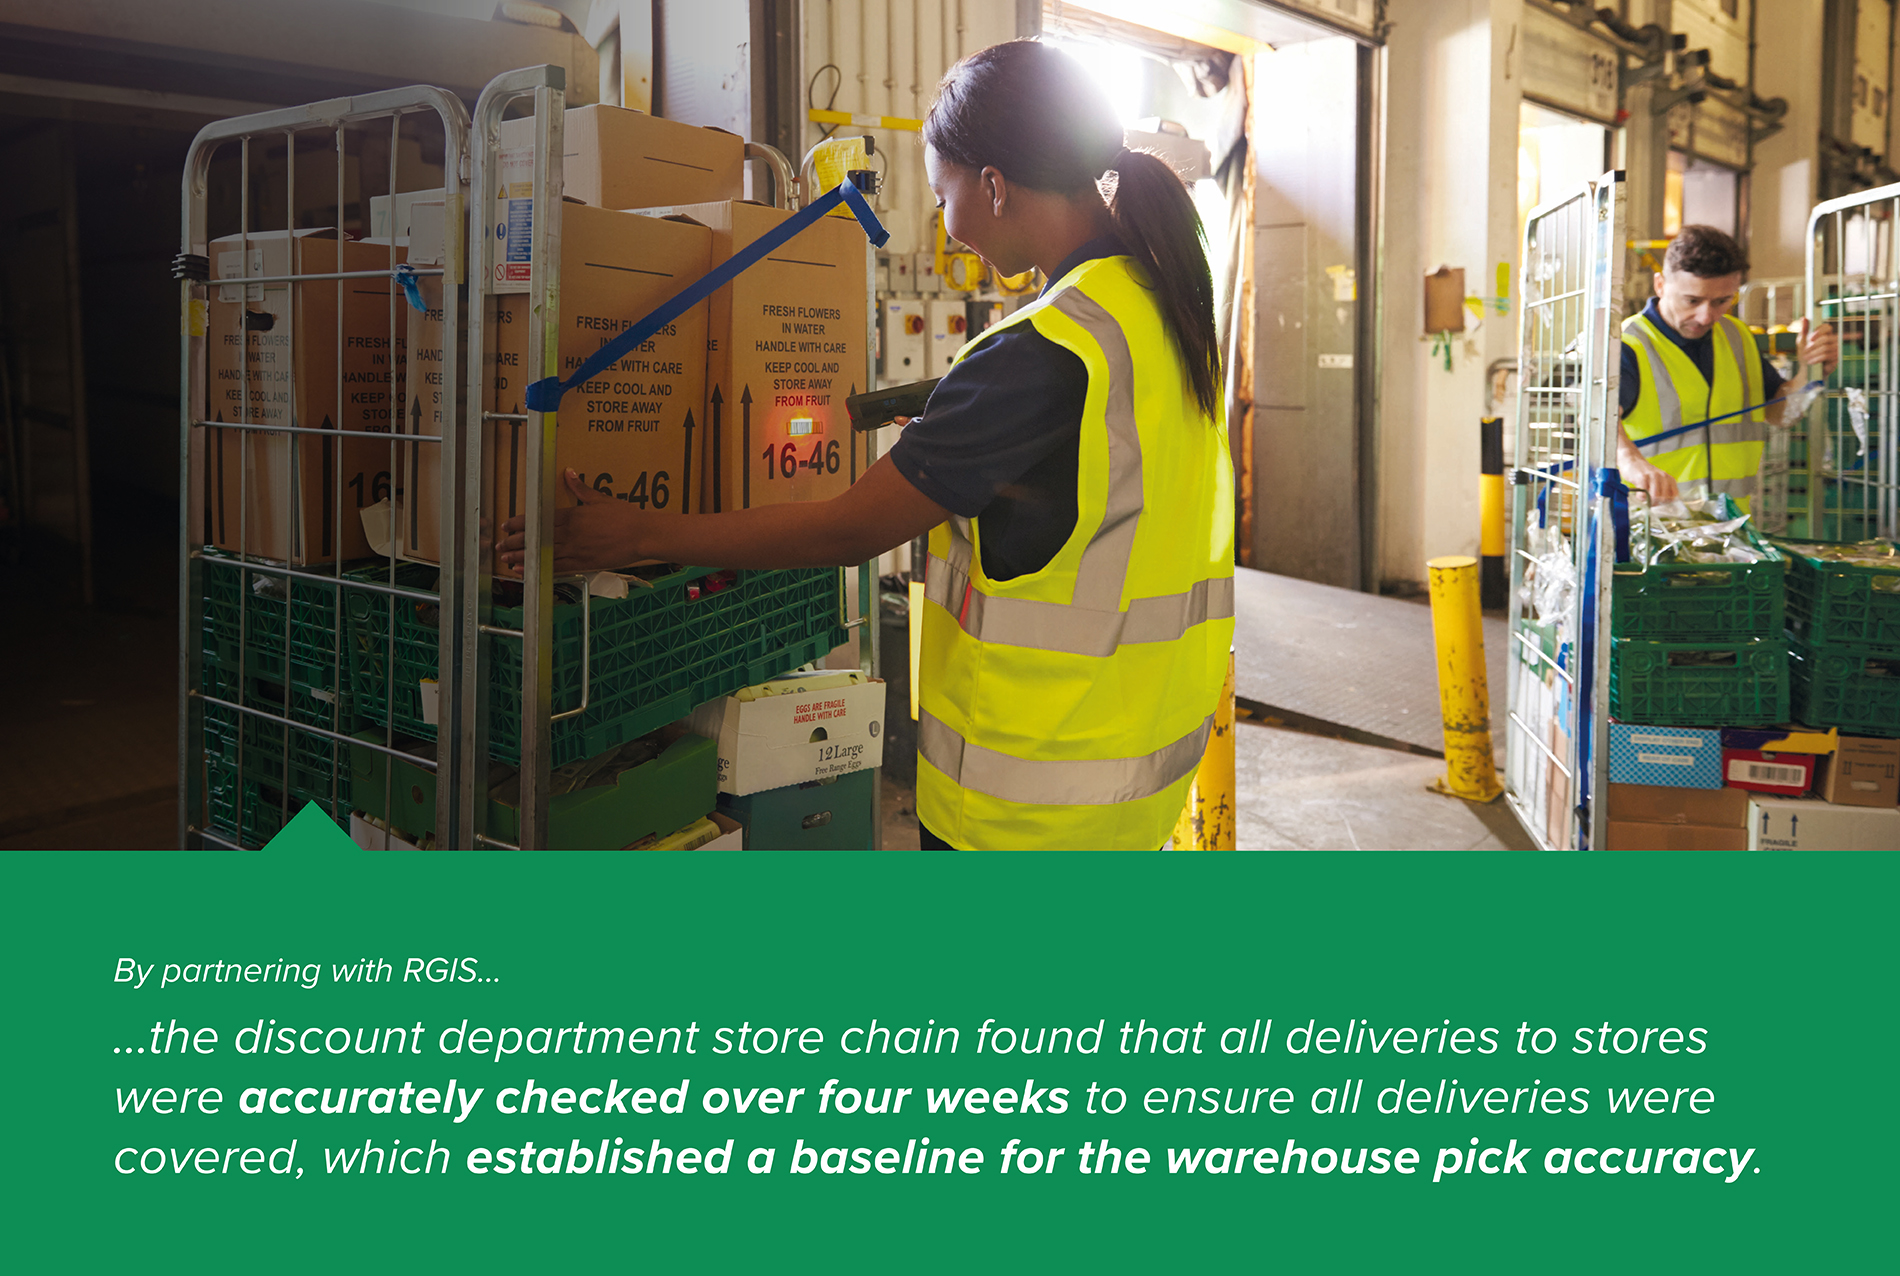 Third Party Logistics Warehouse Pick Accuracy Audit at Store Level